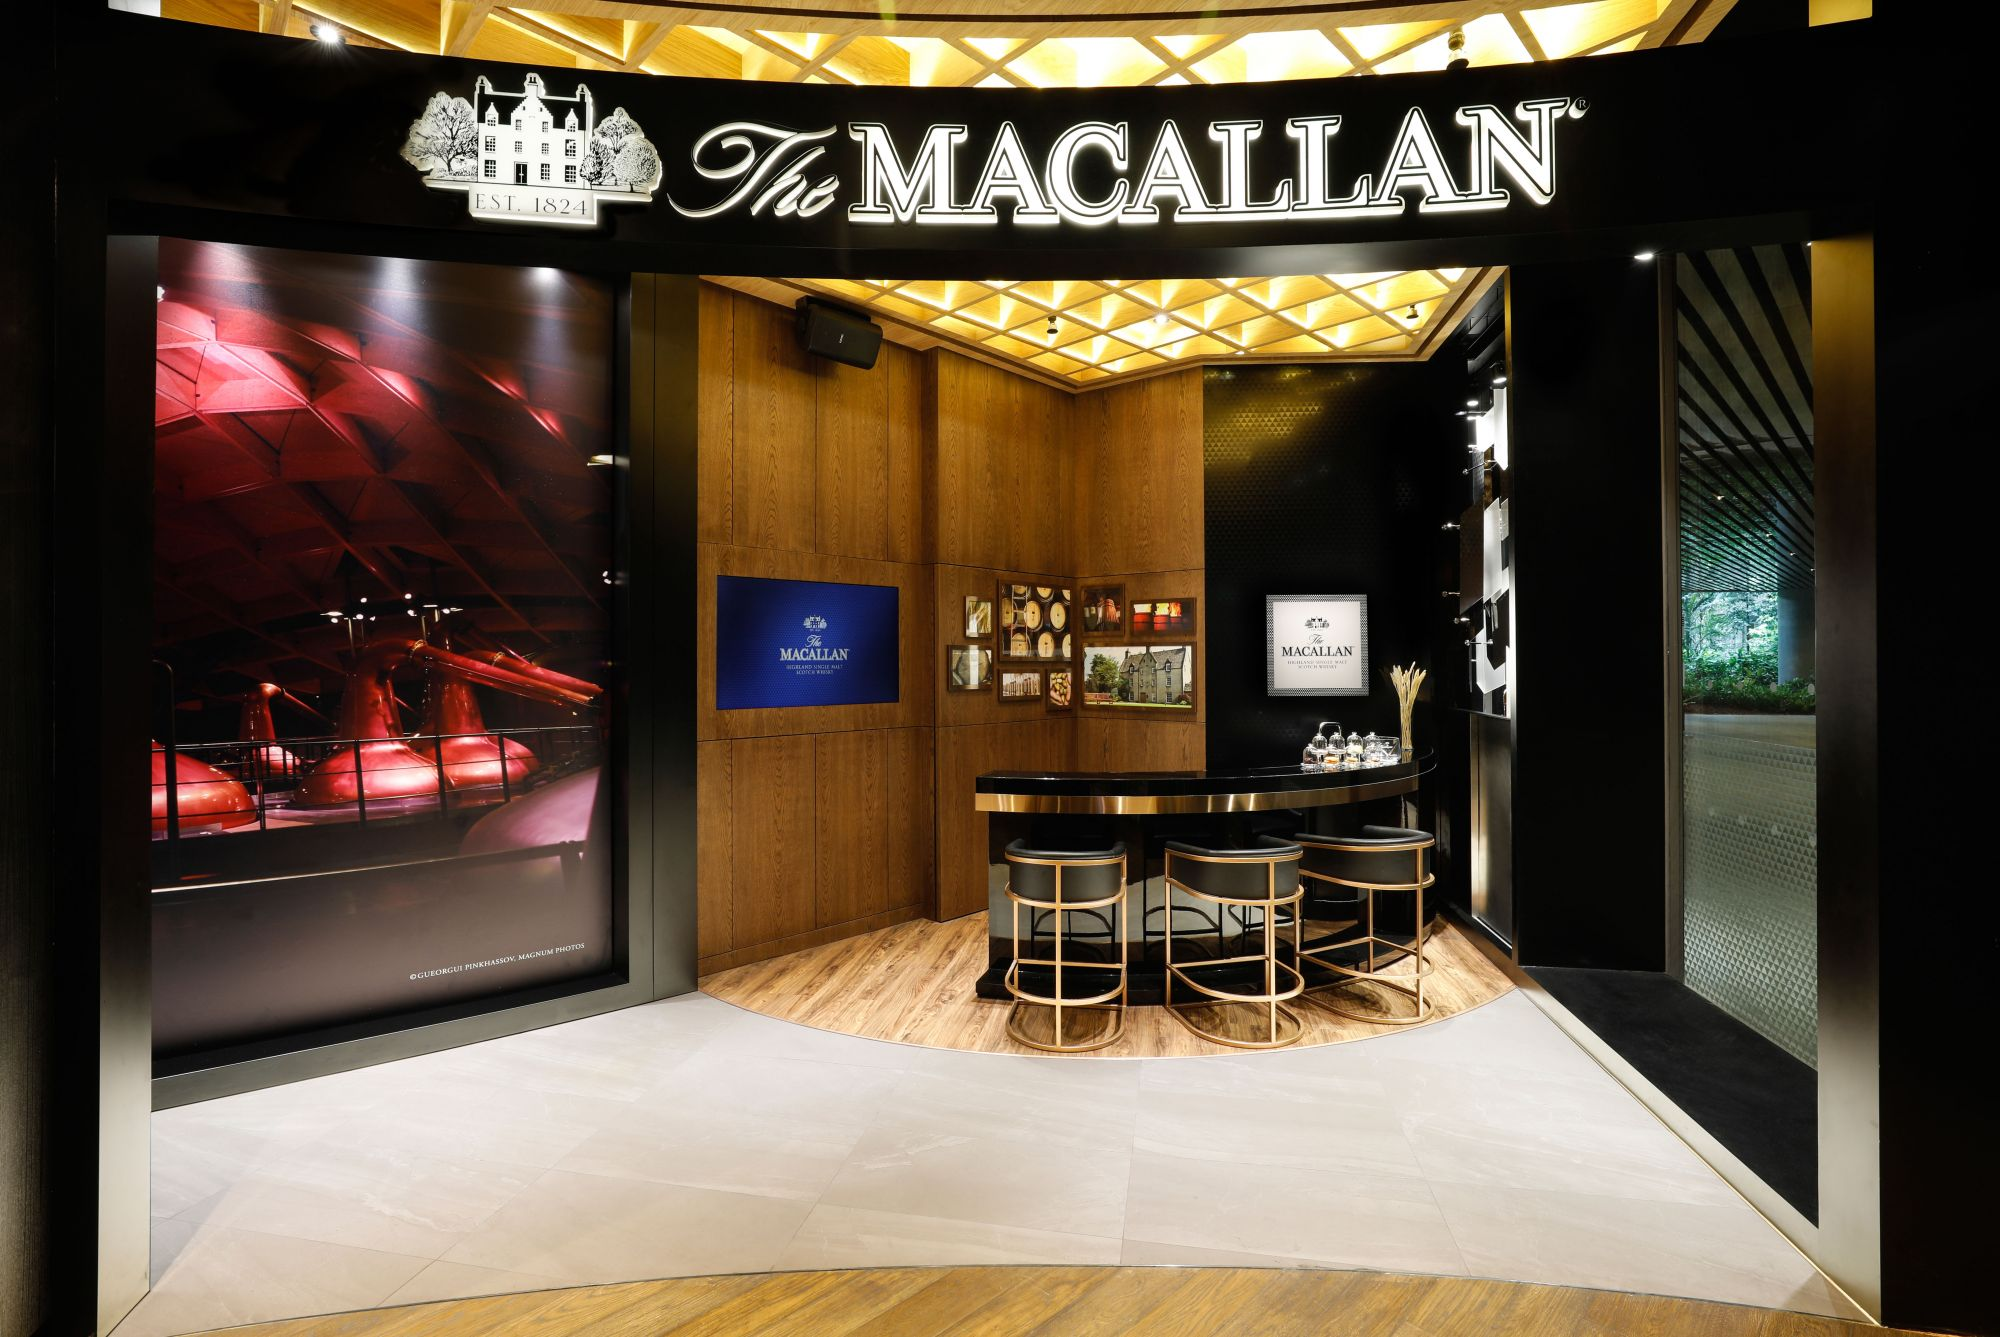 Discover Your Palate For Fine Whiskies At The Macallan Boutique @ 1855